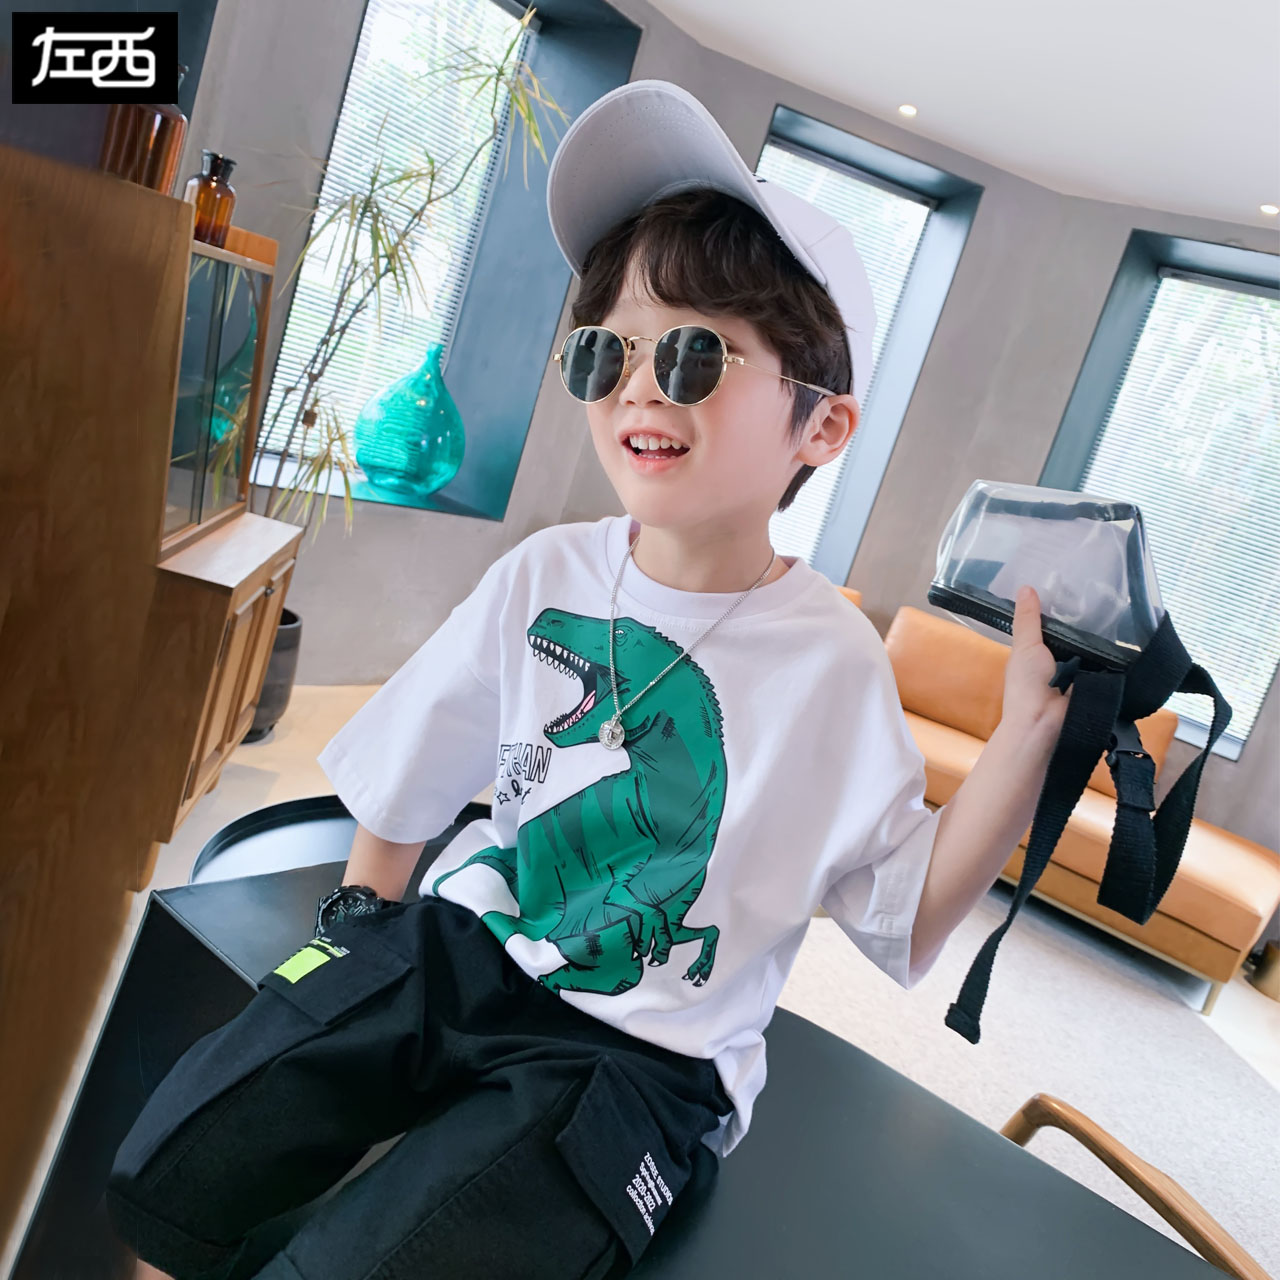 Zuoxi childrens wear boys T-shirt short sleeve summer wear pure cotton childrens half sleeve middle school childrens foreign style Korean fashion 2020 new style